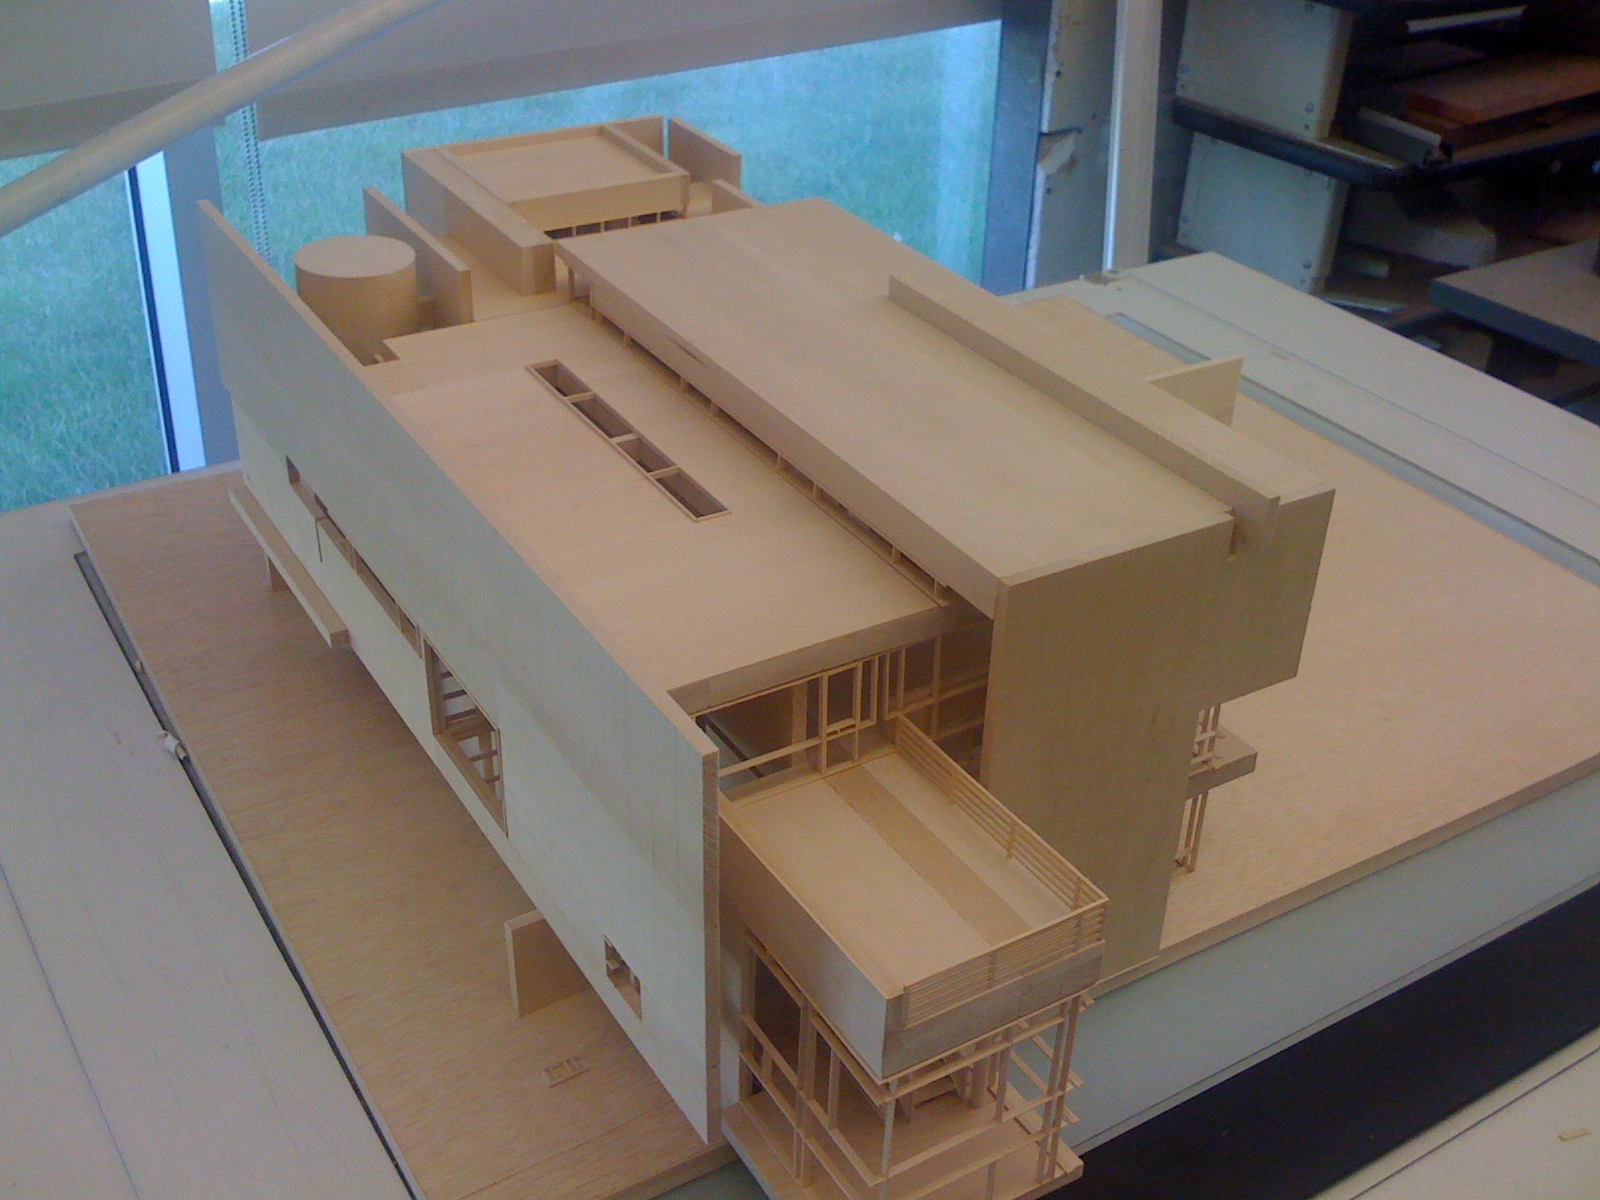 Warm up exercise for first year studio. Part of an analysis of Richard Meier's work.